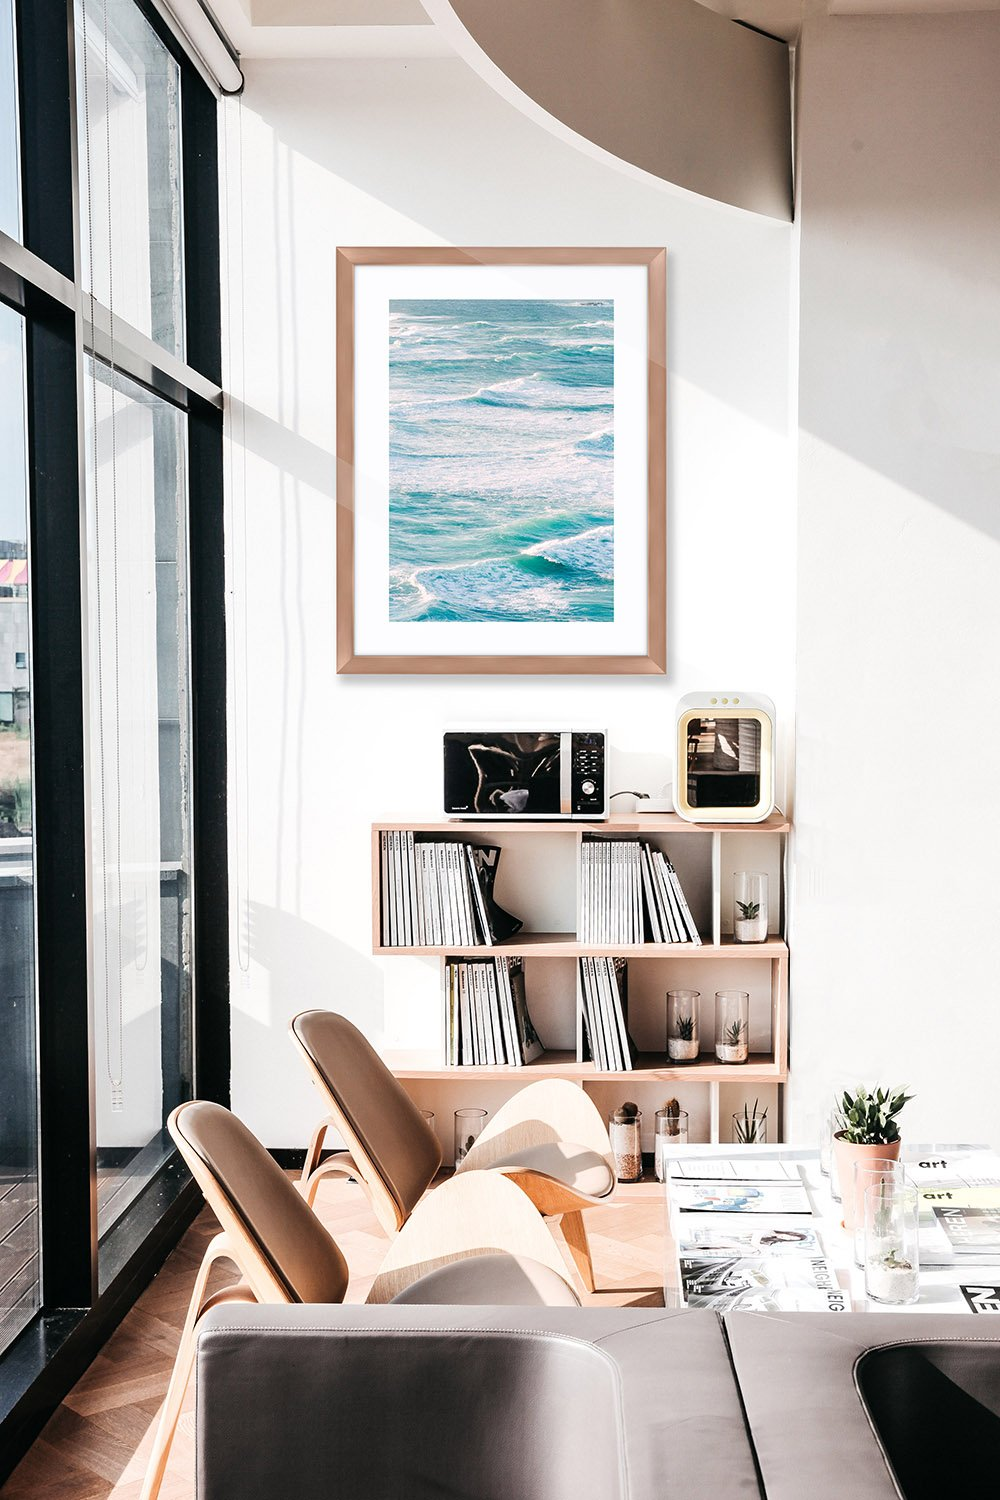 ART PRINTS FOR COASTAL INTERIORS